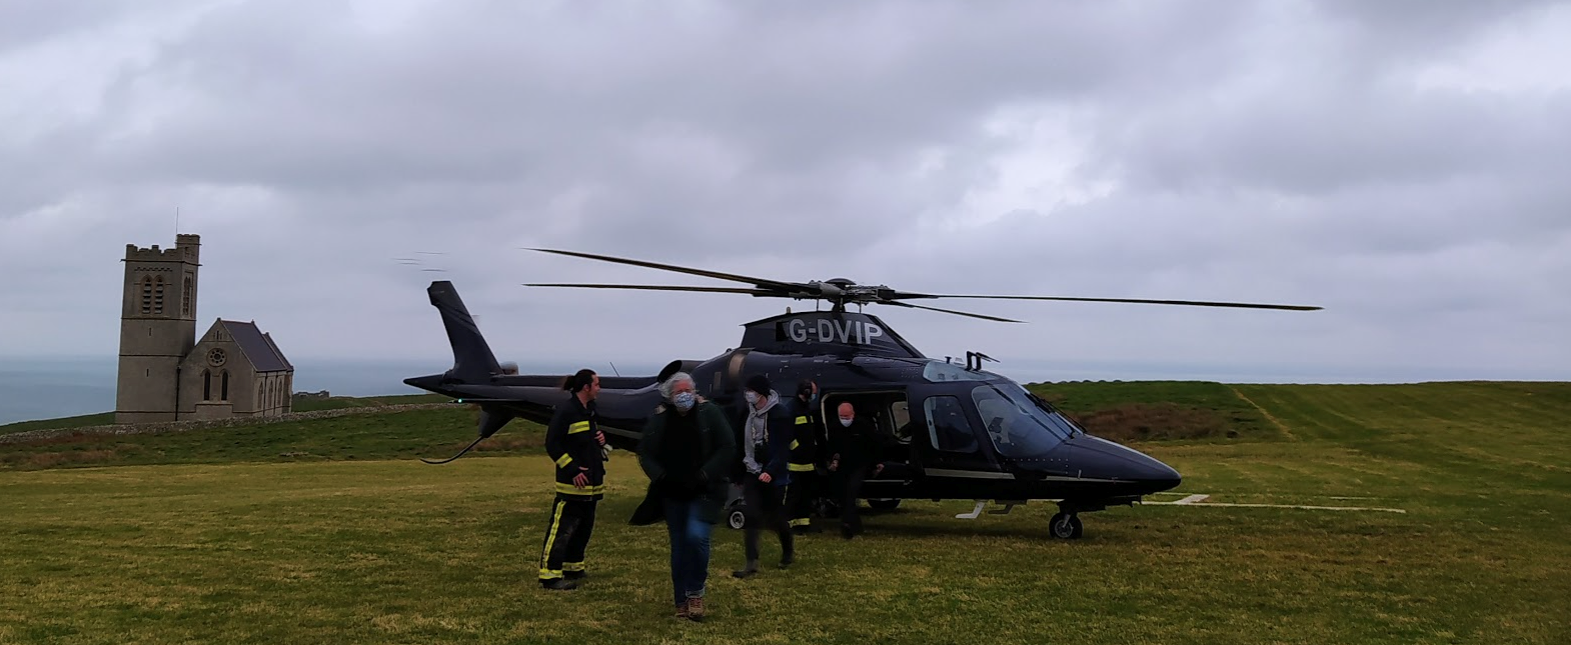 A photo showing the helicopter that took the students to the island of Lundy